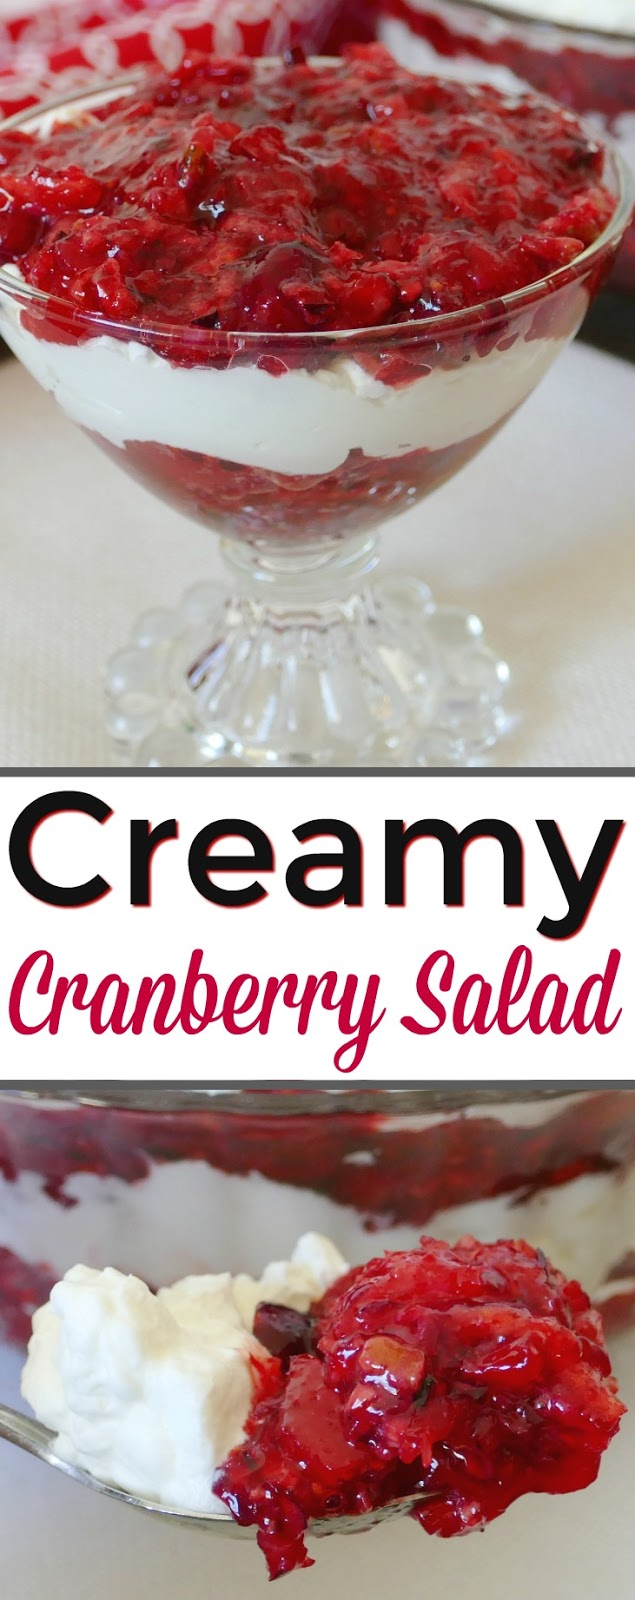 This delicious holiday salad is a tasty dessert for Thanksgiving or Christmas! In addition to the cranberries, this salad has apples, orange juice, pecans and any flavor red jello! We used raspberry and it was delicious! Homemade whipped cream and cream cheese is the perfect addition to the cranberries. This is always a hit at any gathering.